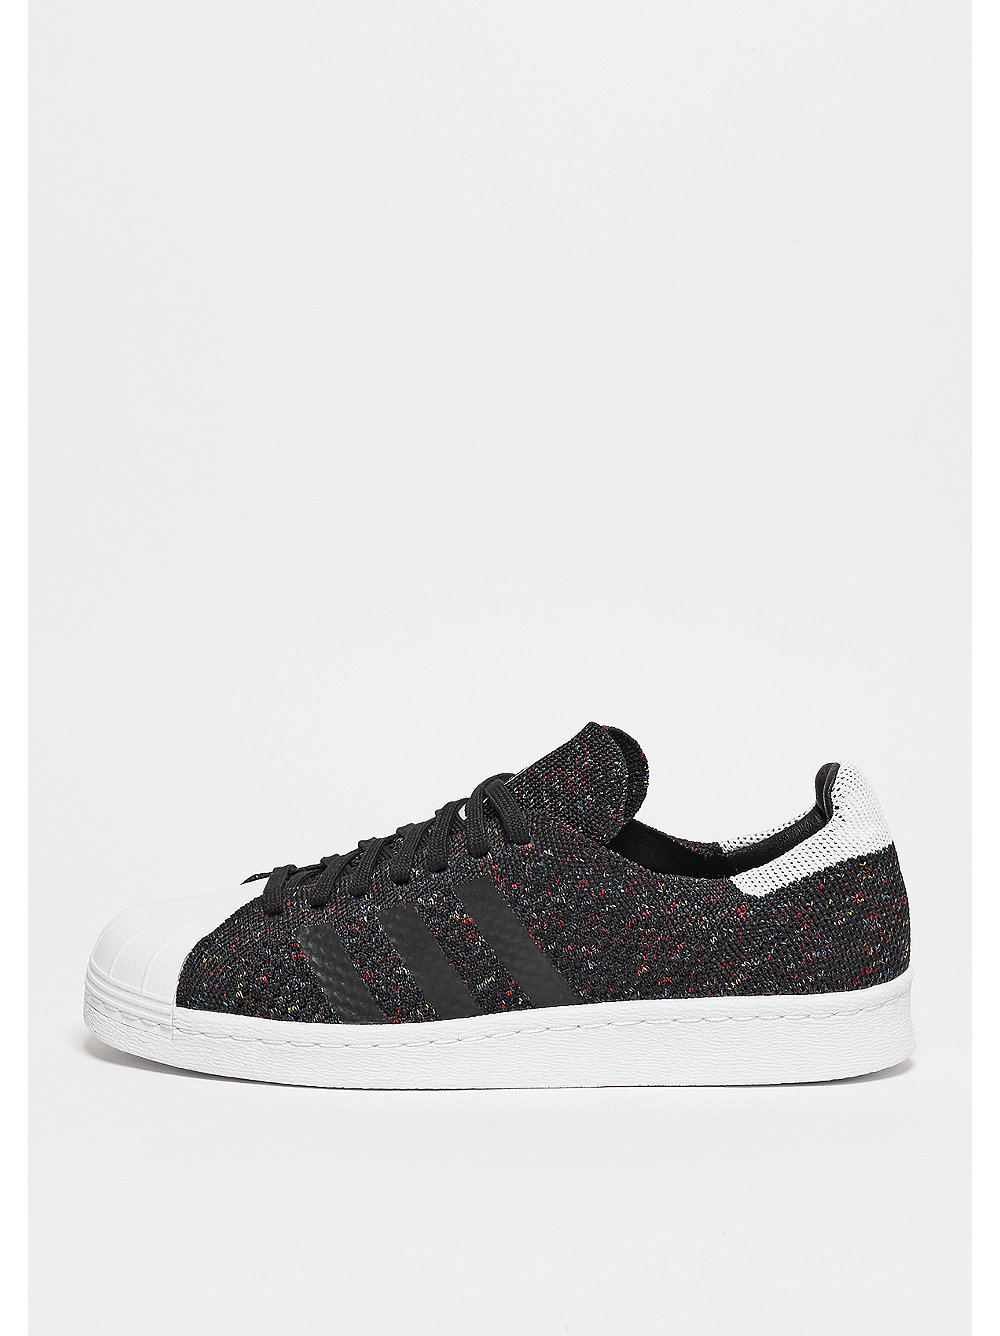 adidas Superstar 80s Primeknit core black-white-white